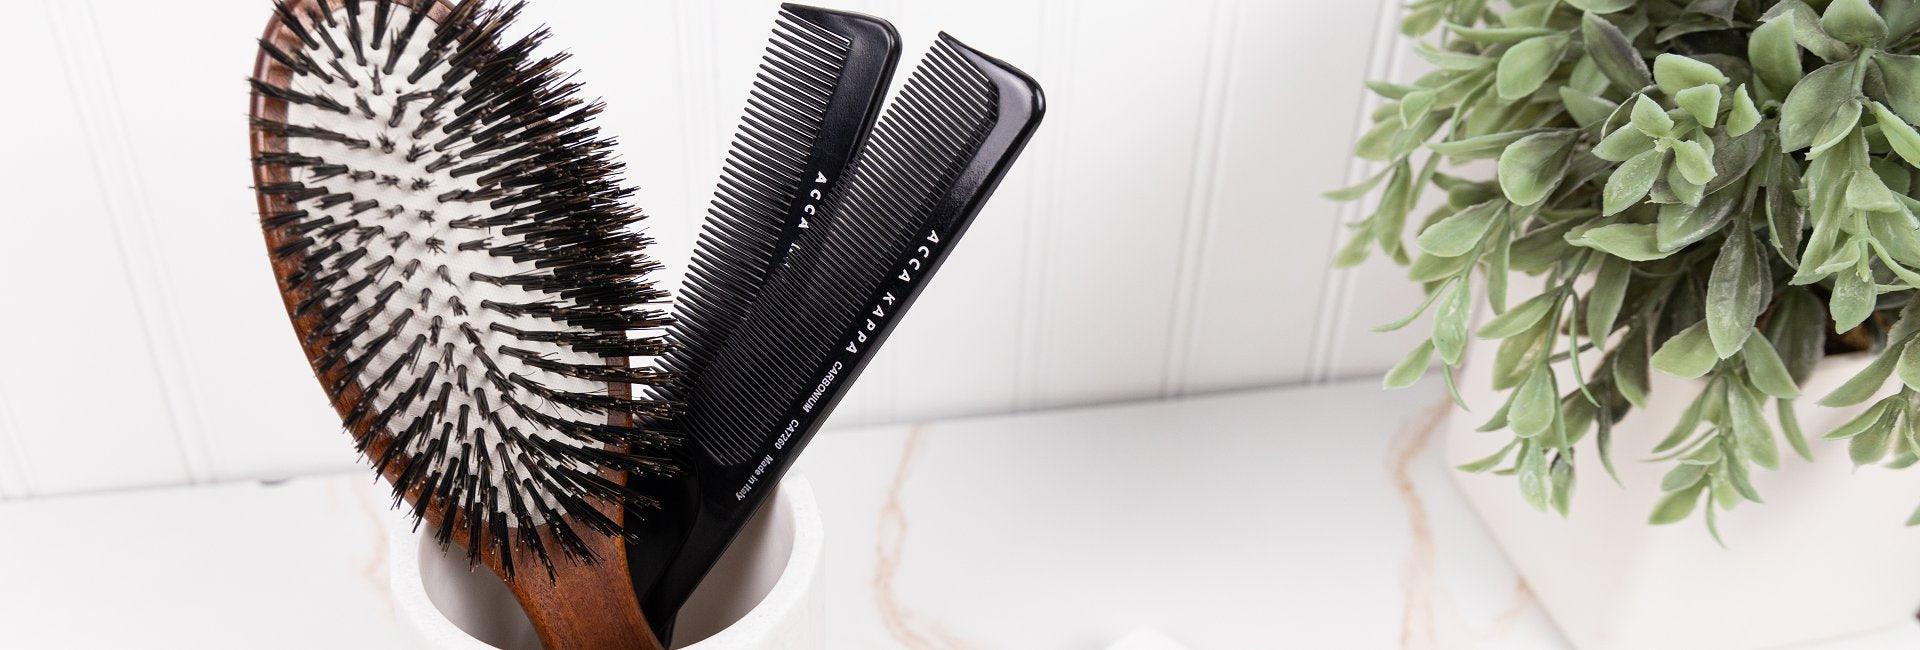 collections/brushes-and-combs-963x328-acca-kappa-collection-image.jpg